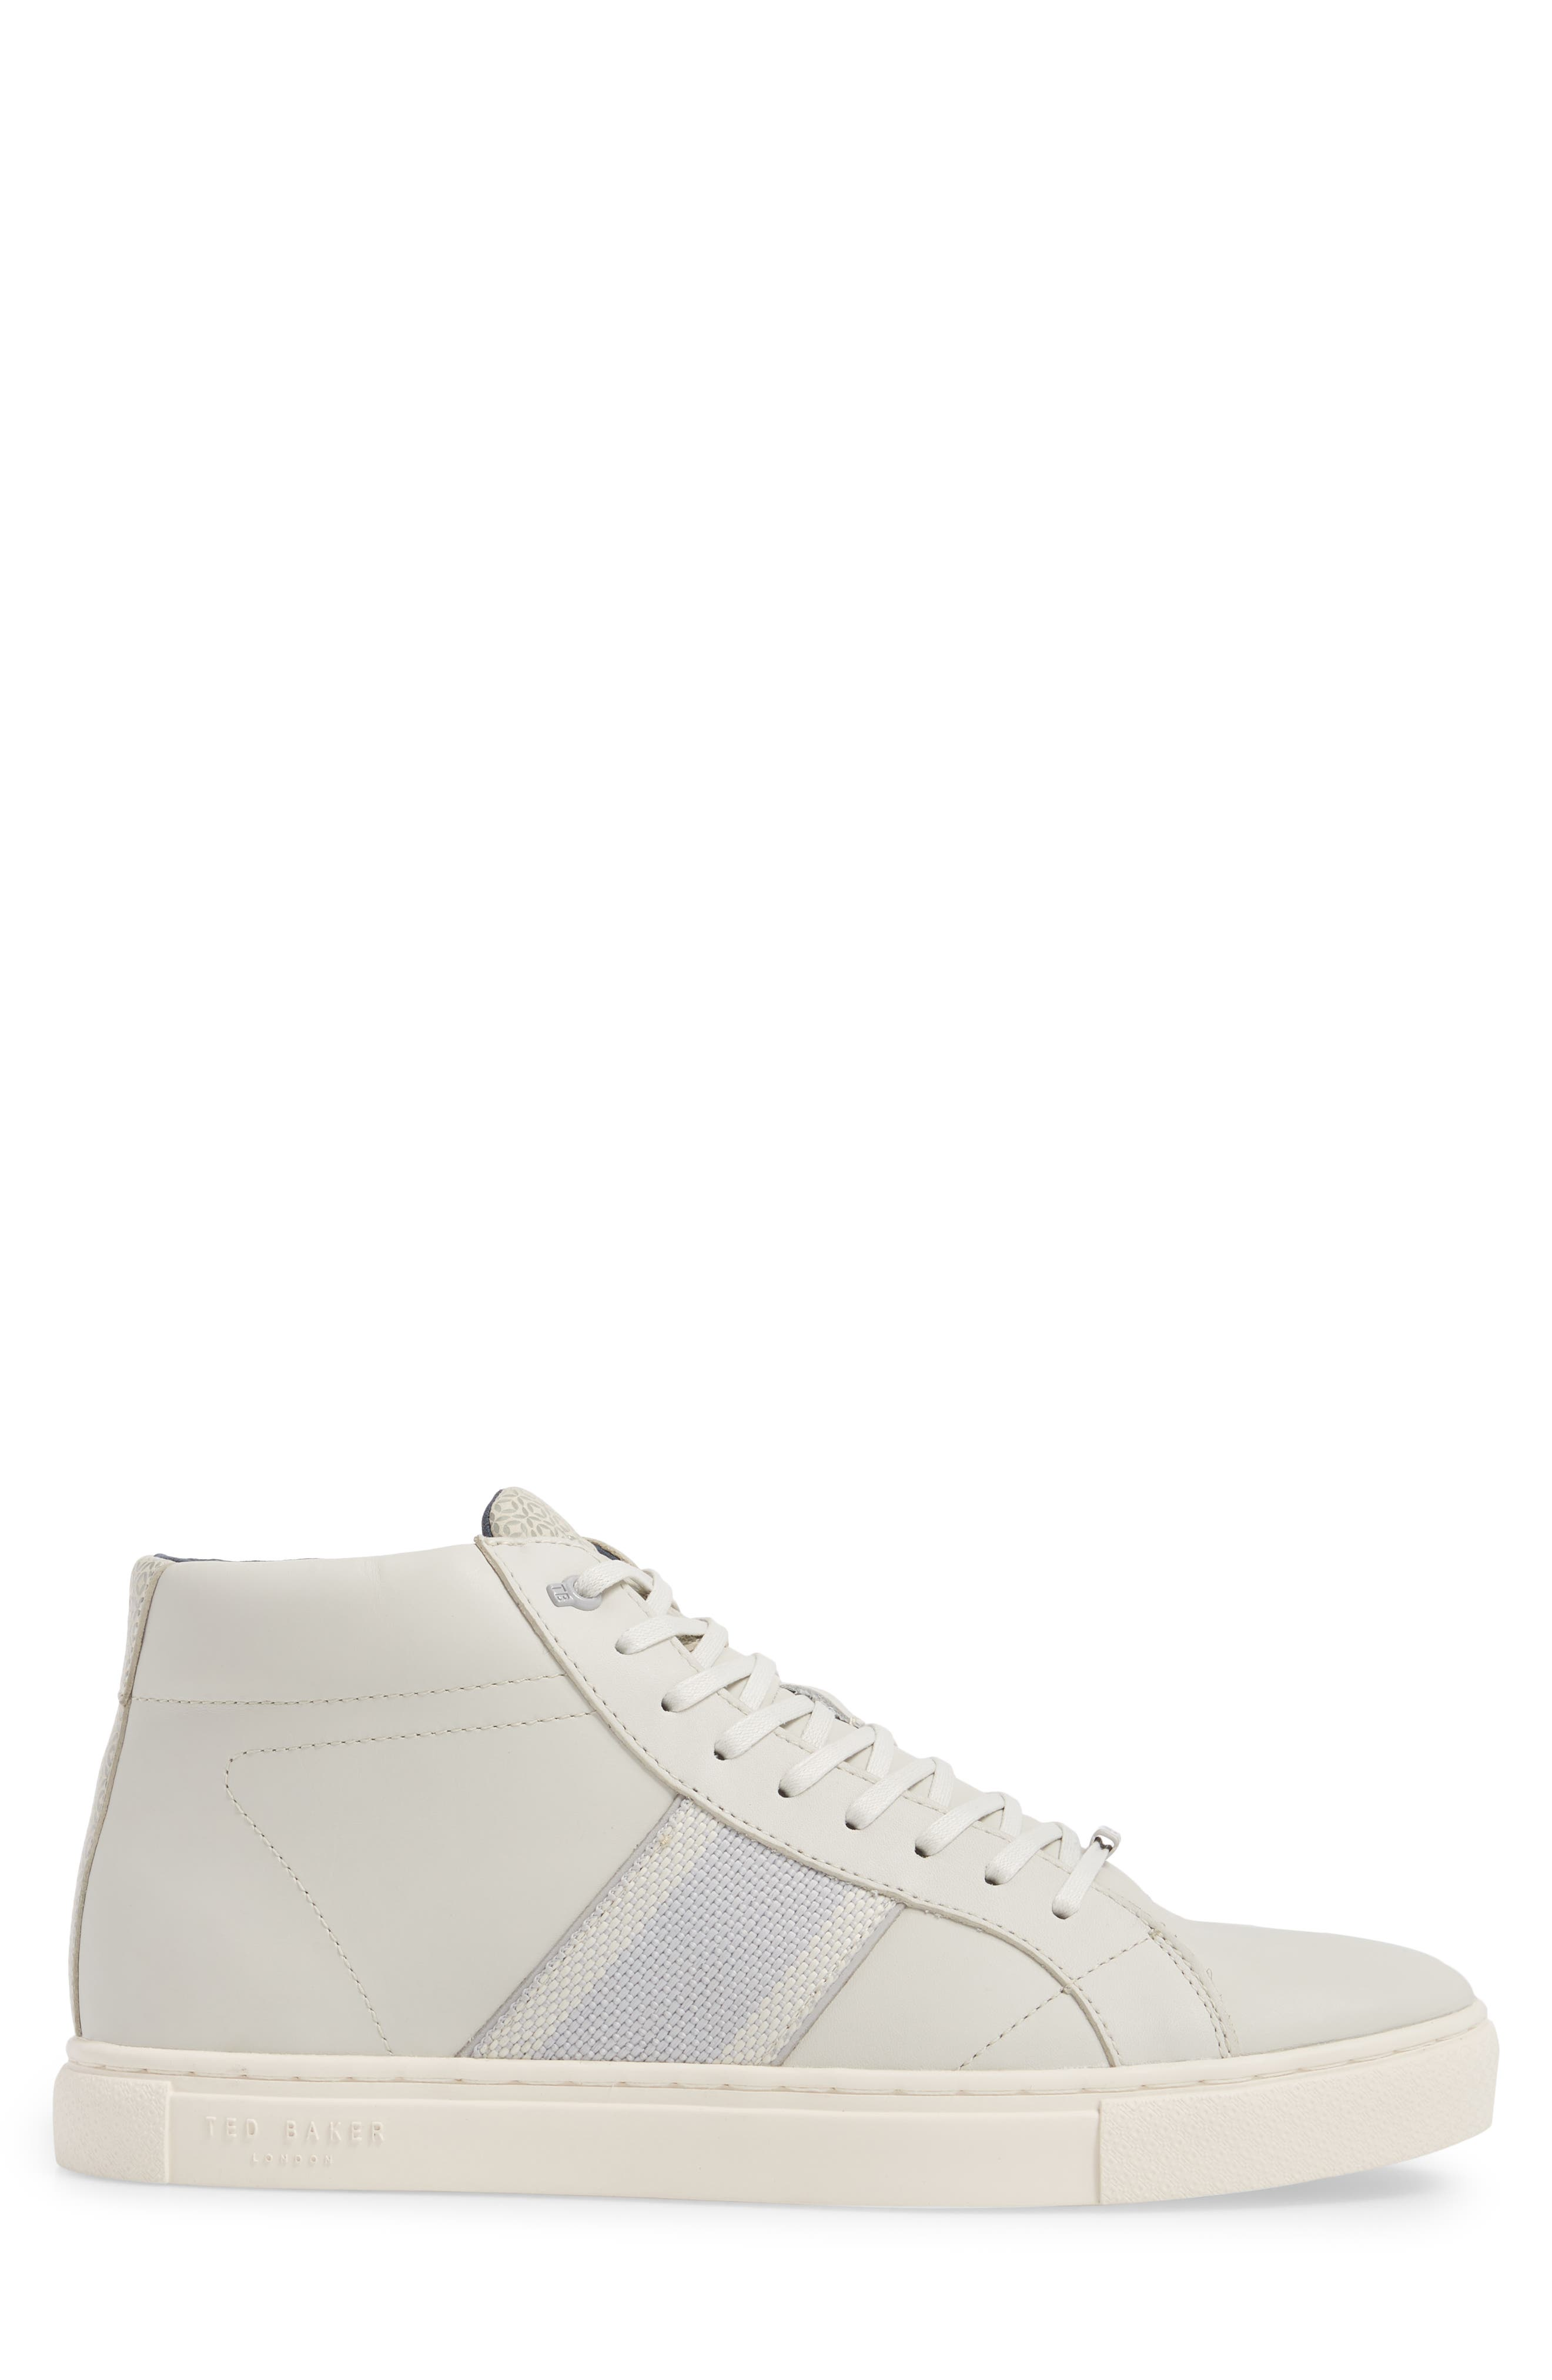 Cruuw High Top Sneaker,                             Alternate thumbnail 3, color,                             WHITE LEATHER